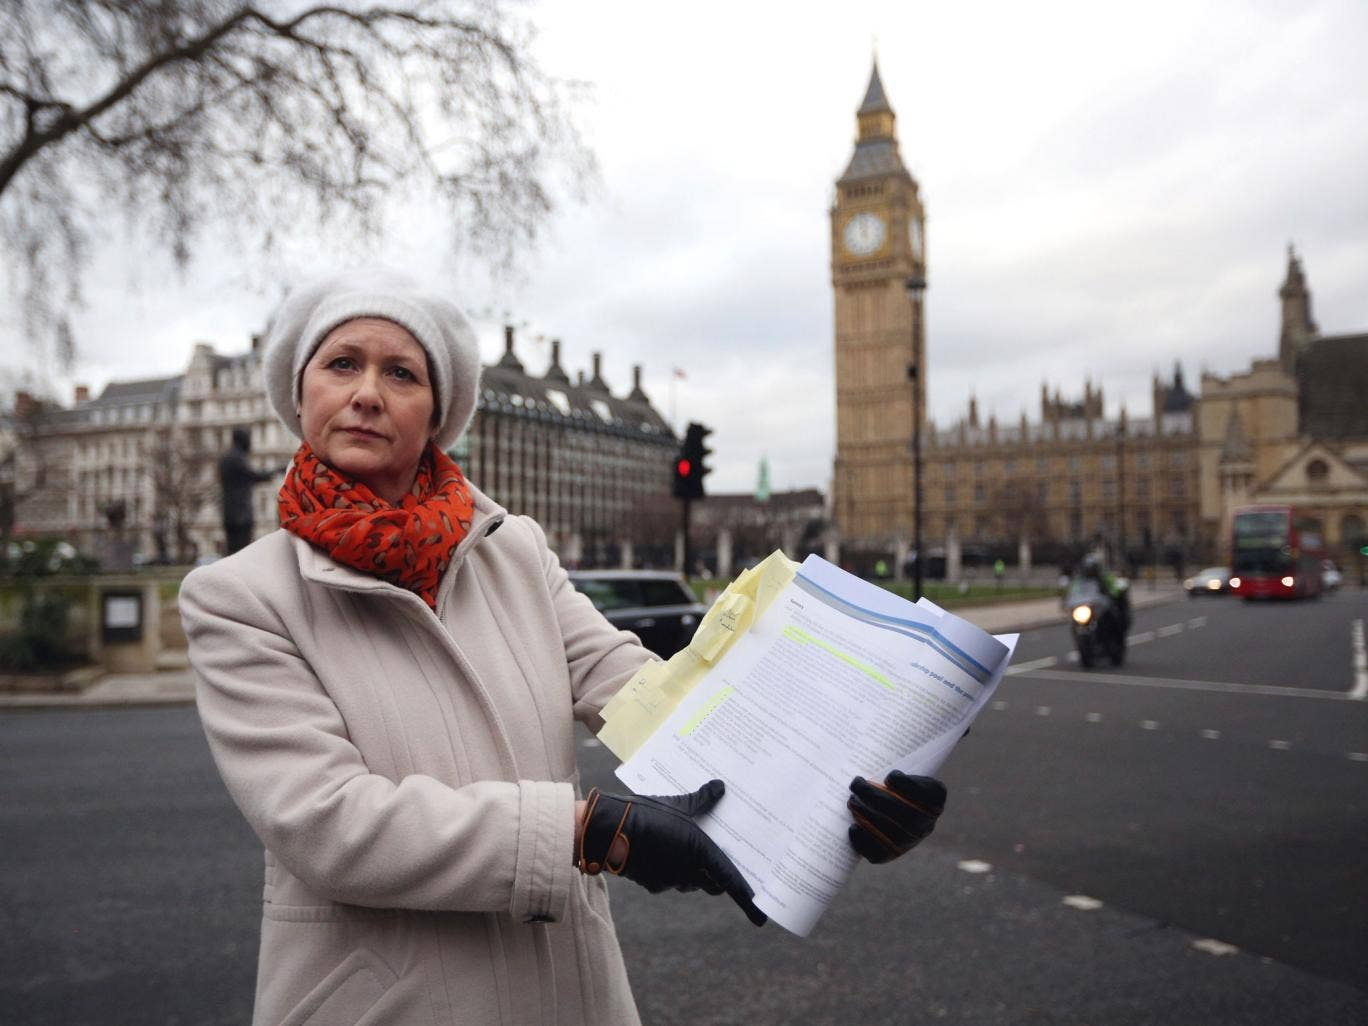 Julie Bailey, of the campaign group 'Cure the NHS', whose mother Bella, 86, died whilst she was a patient at Stafford General Hospital, poses outside the Houses of Parliament with a copy of the report of the Mid Staffordshire NHS Trust Foundation Public